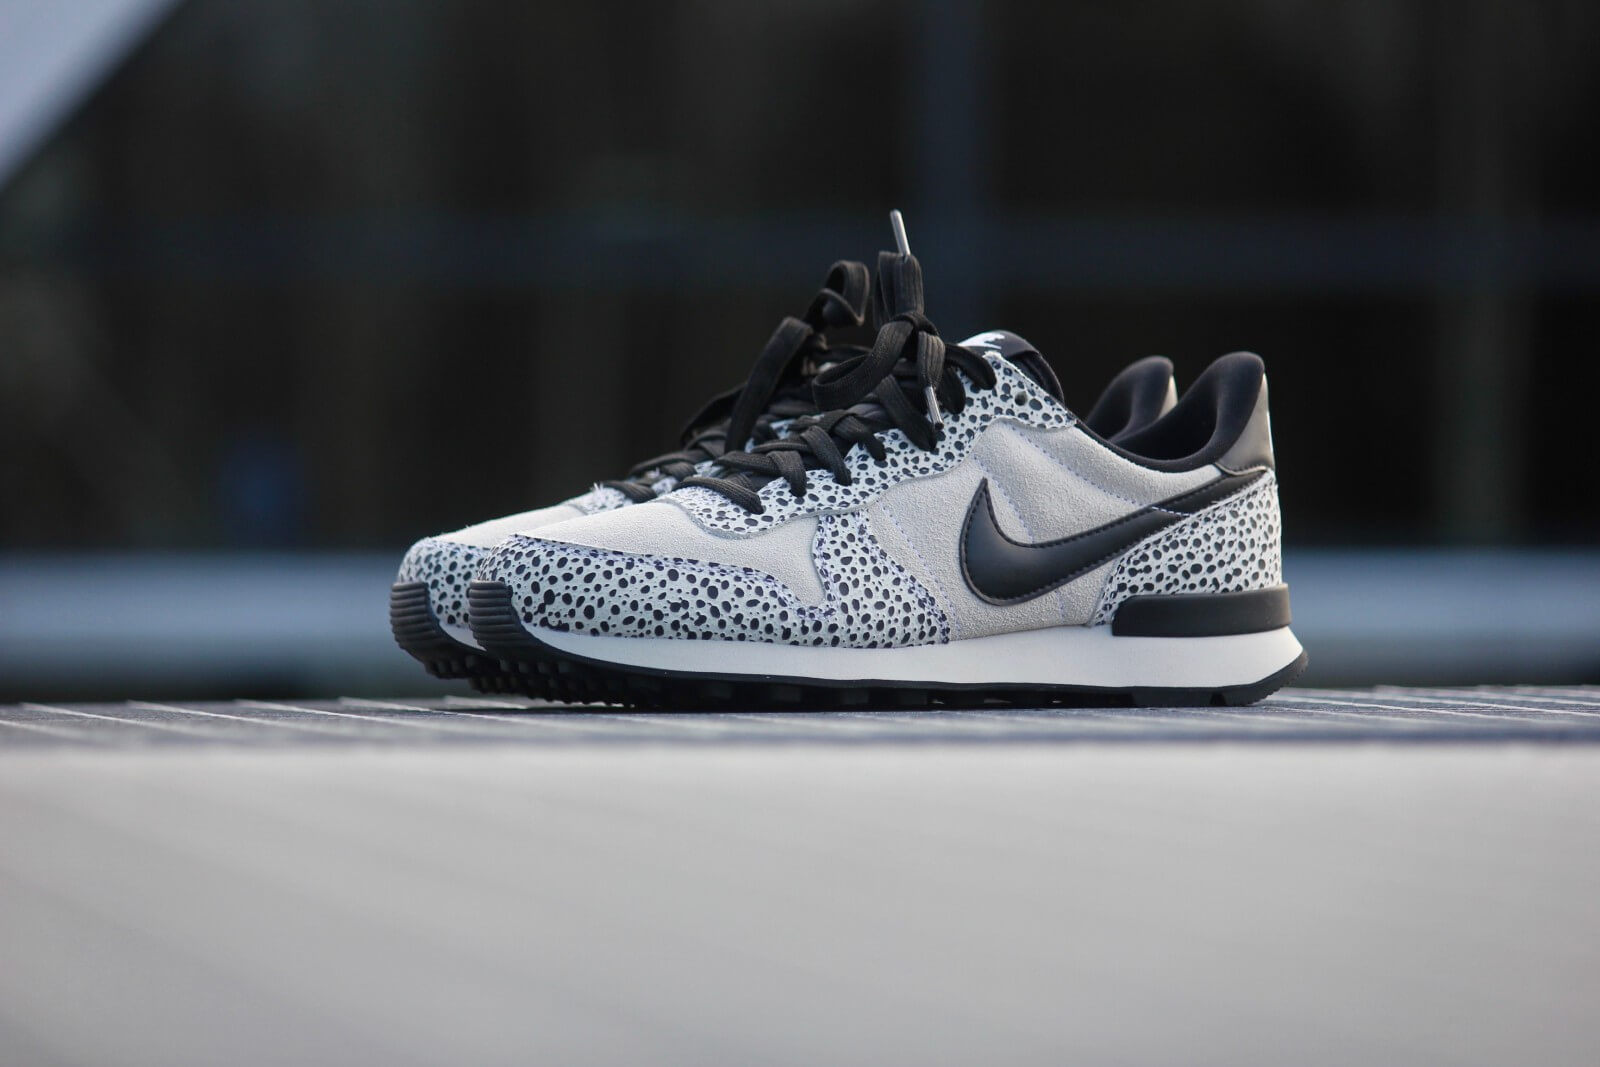 Nike Internationalist PRM WhiteLight Bone Black 828404 101